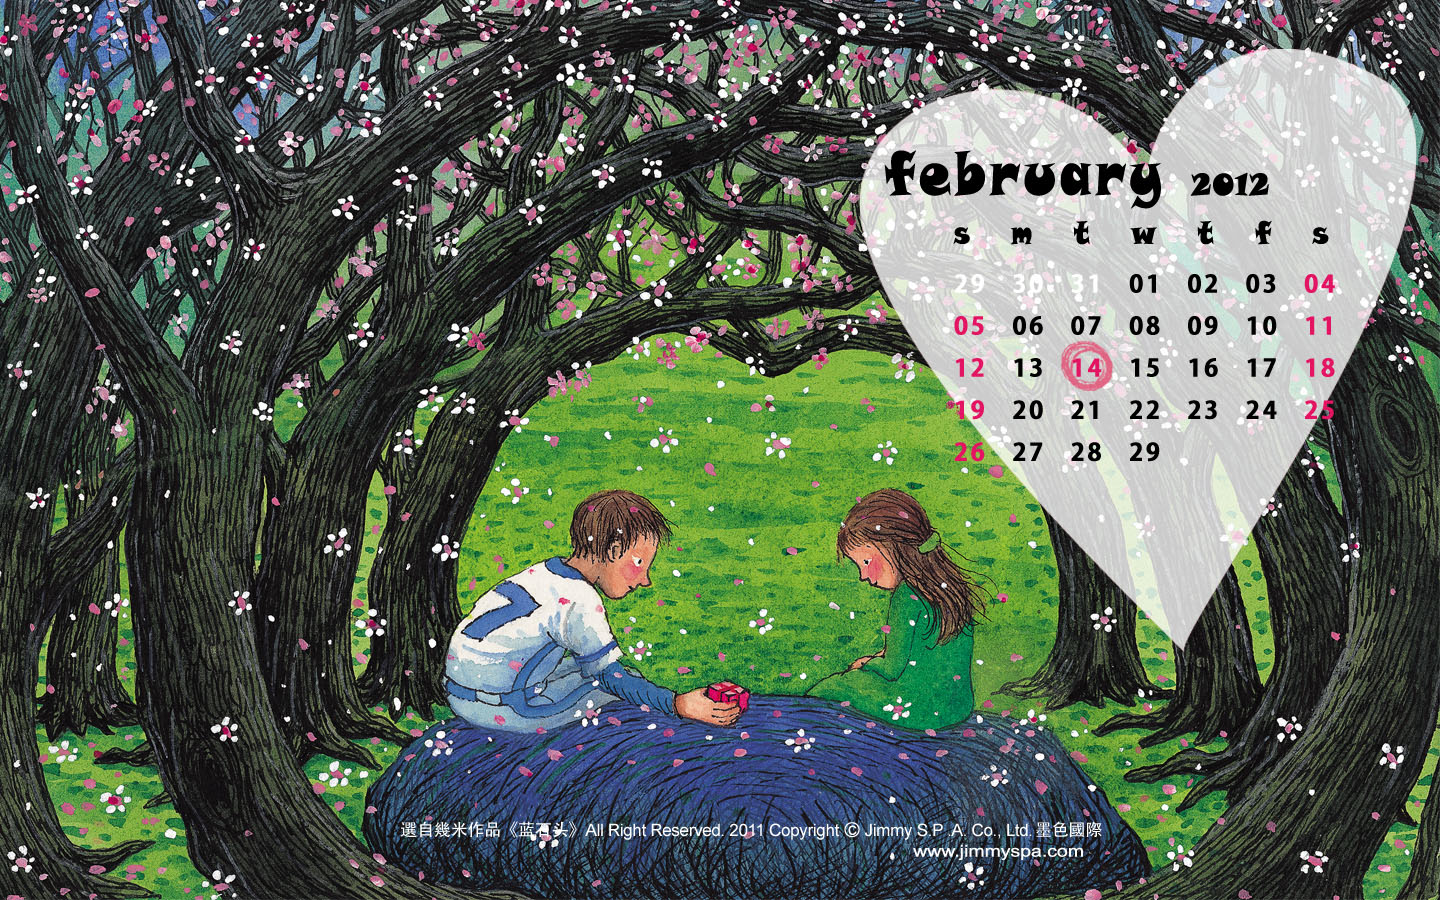 In January Calendar Wallpaper 31363